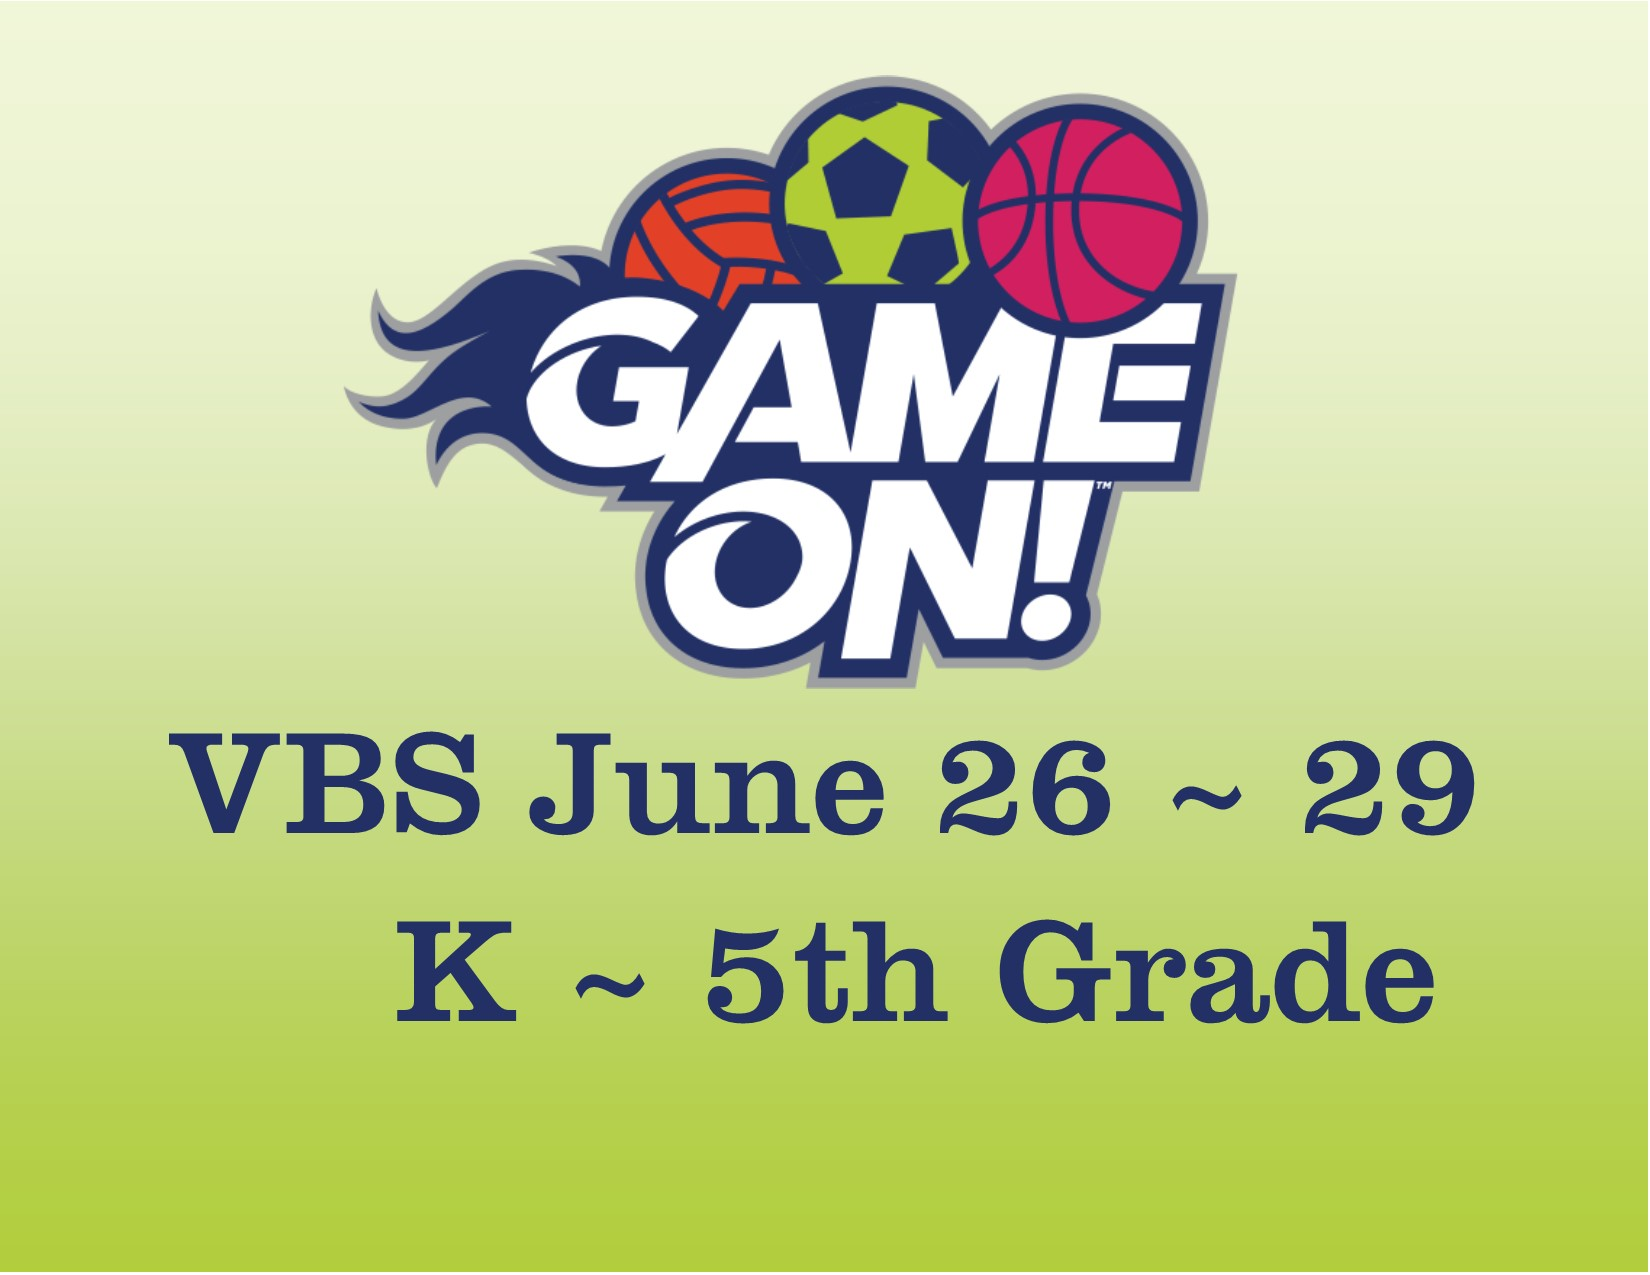 Vbs 2018 pc new